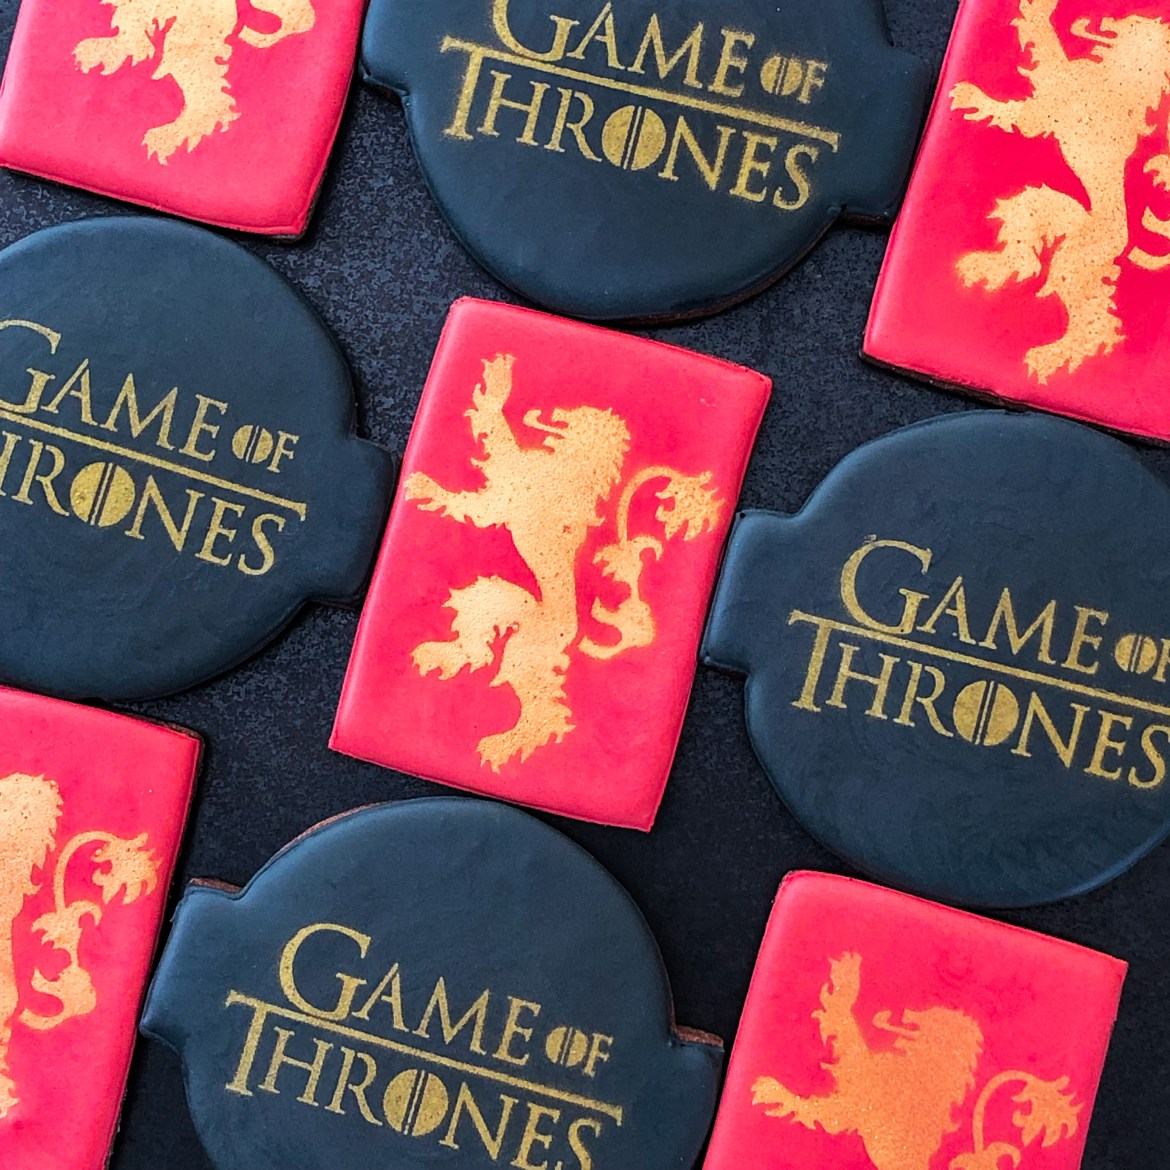 #gameofthronescookies #cookieshilarystyle #cookiesareeverything #gotcookies